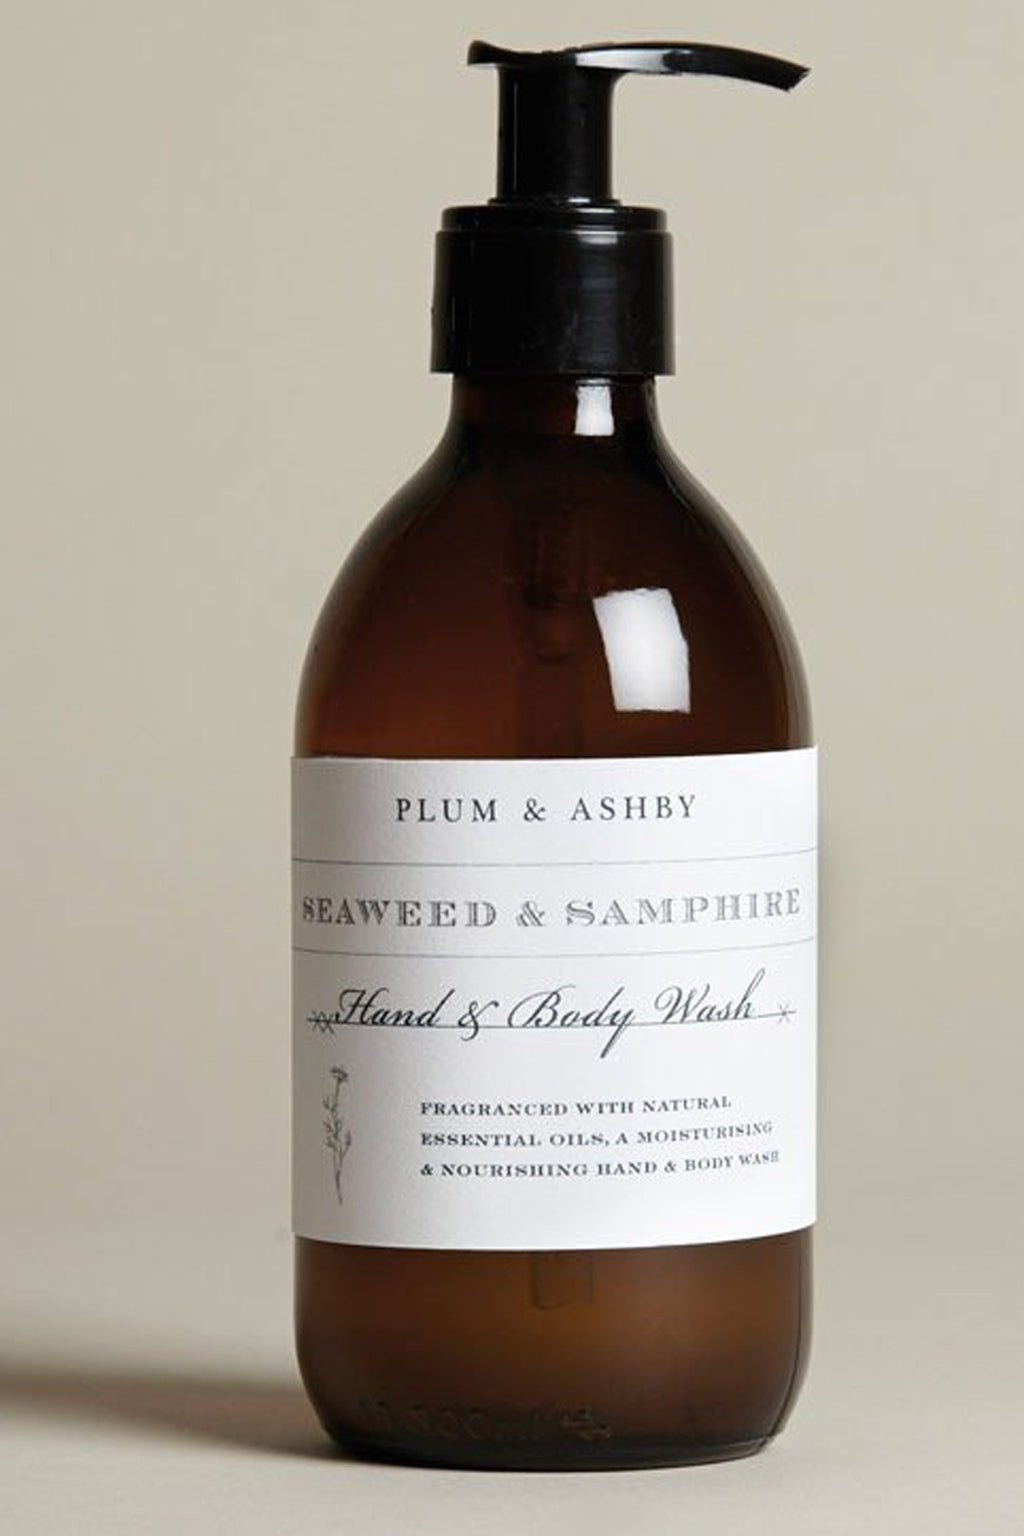 Plum & Ashby Seaweed & Samphire Hand & Body Wash - The Mercantile London